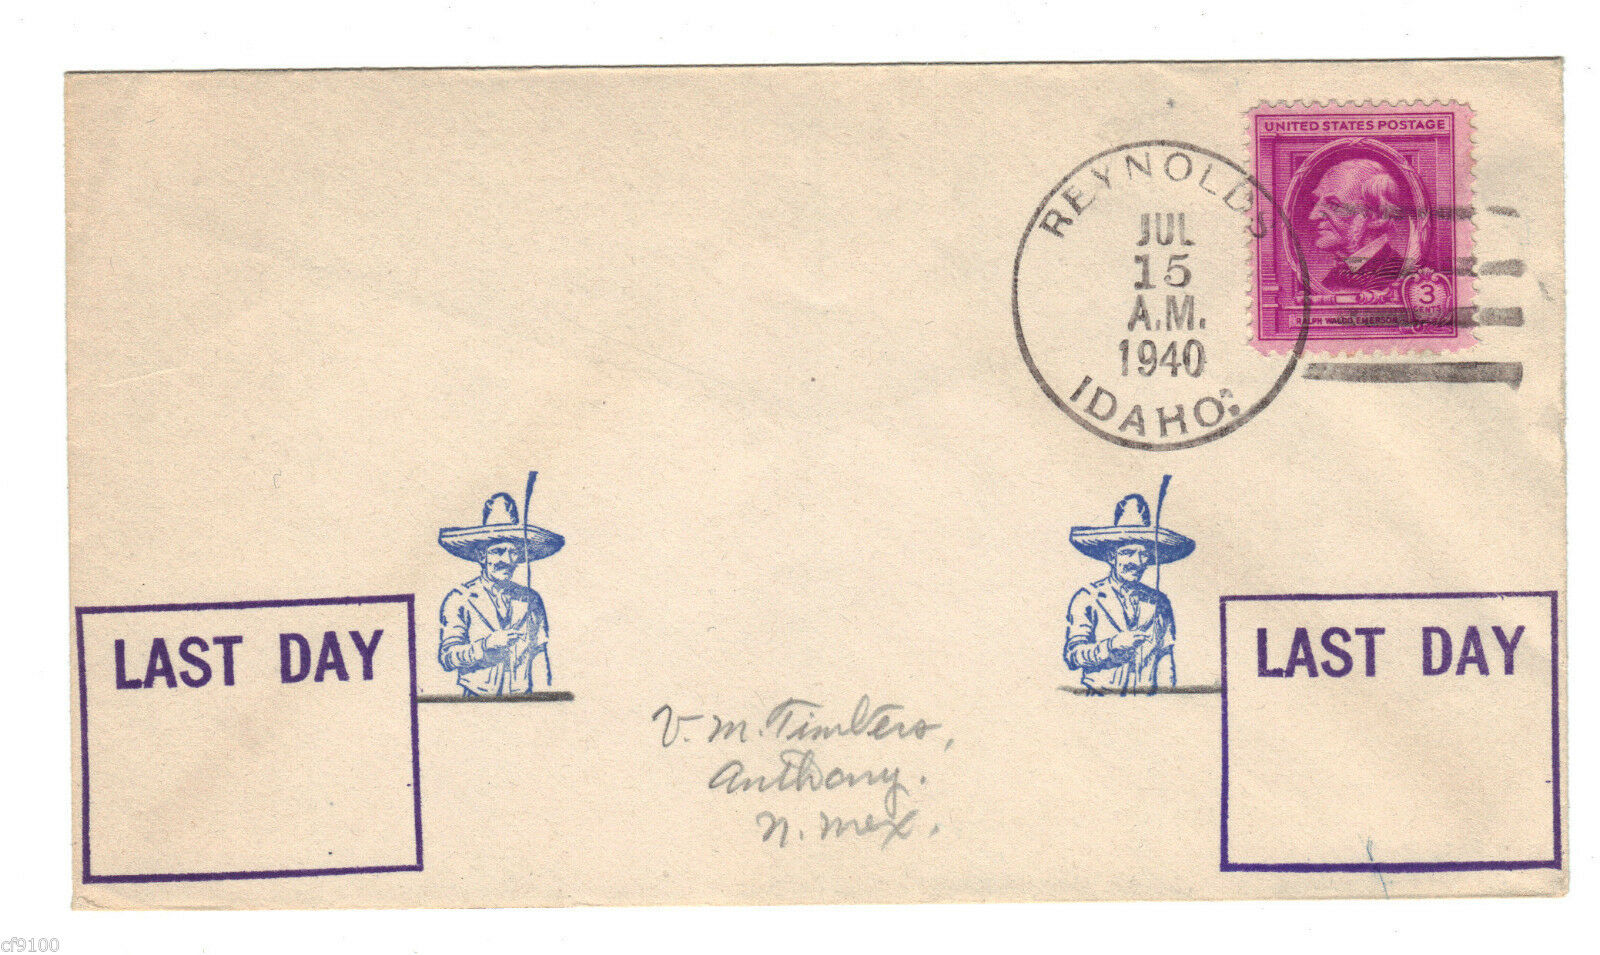 Primary image for US Postal History Cover Stamp DPO Reynolds ID Idaho July 15, 1940 Envelope